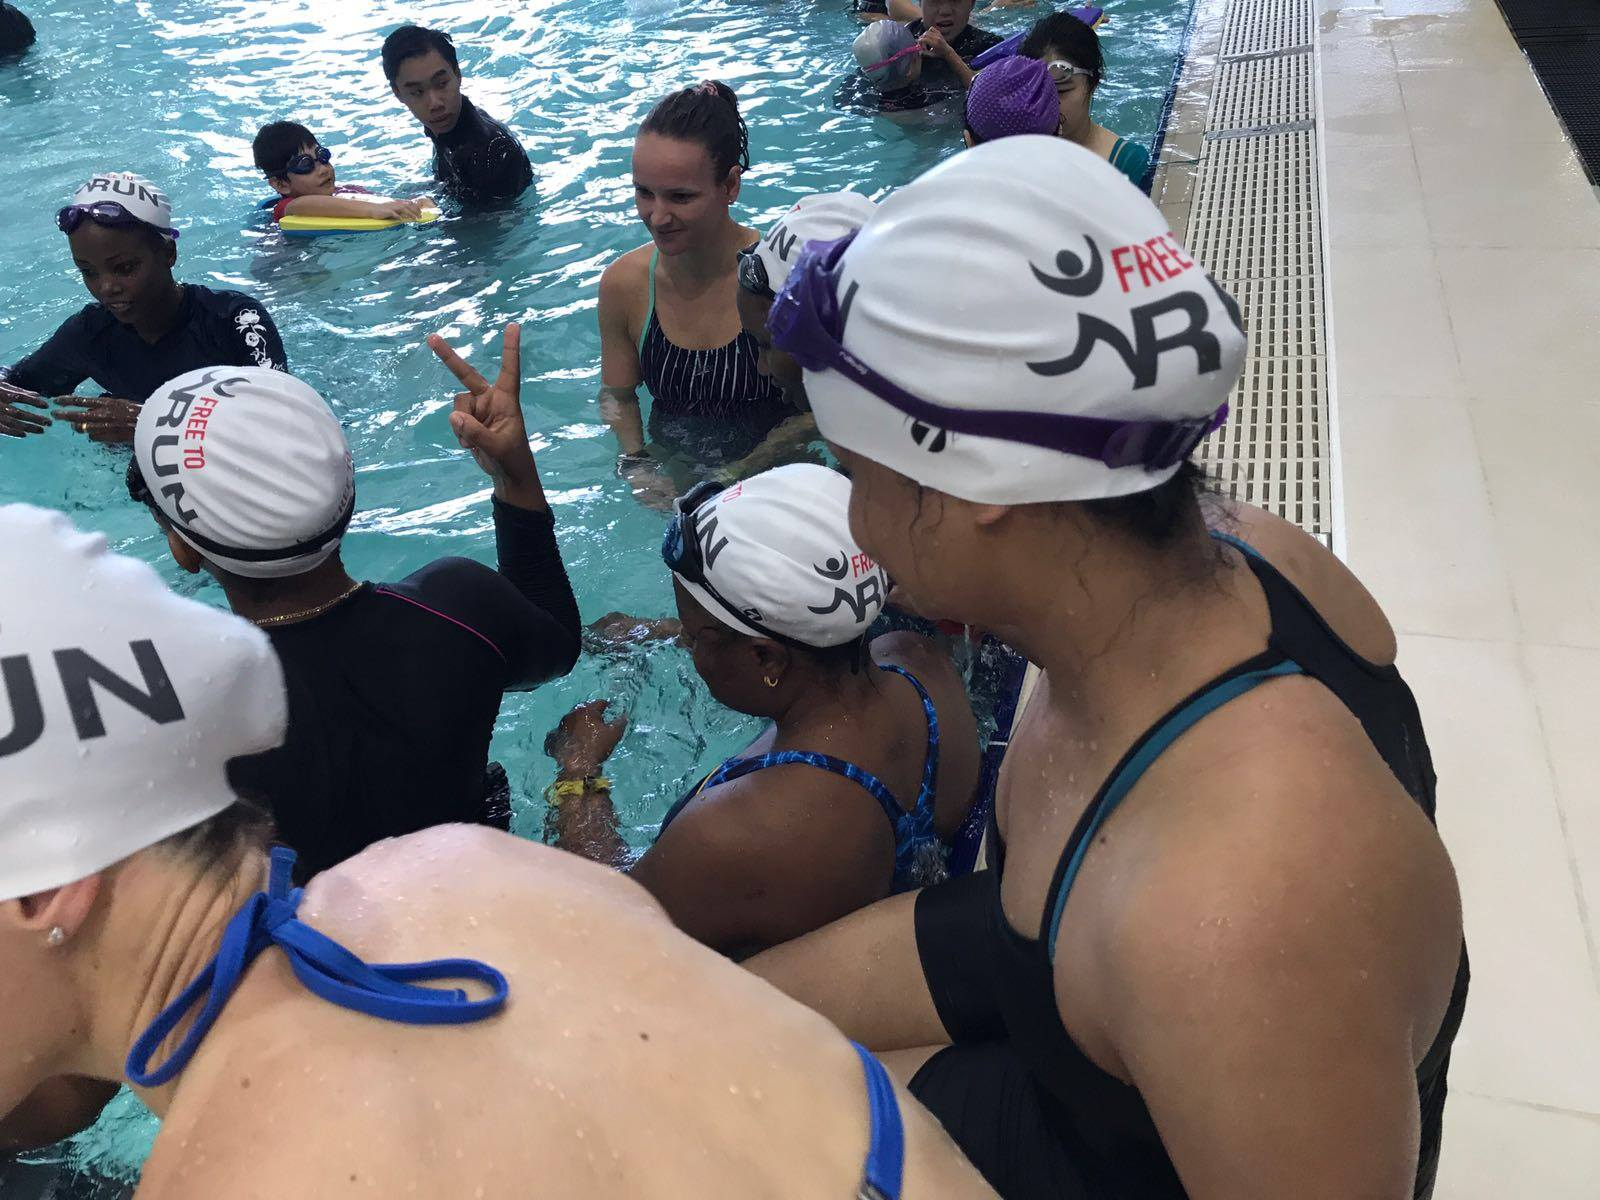 Hong Kong's swimming programme for refugees in 2017